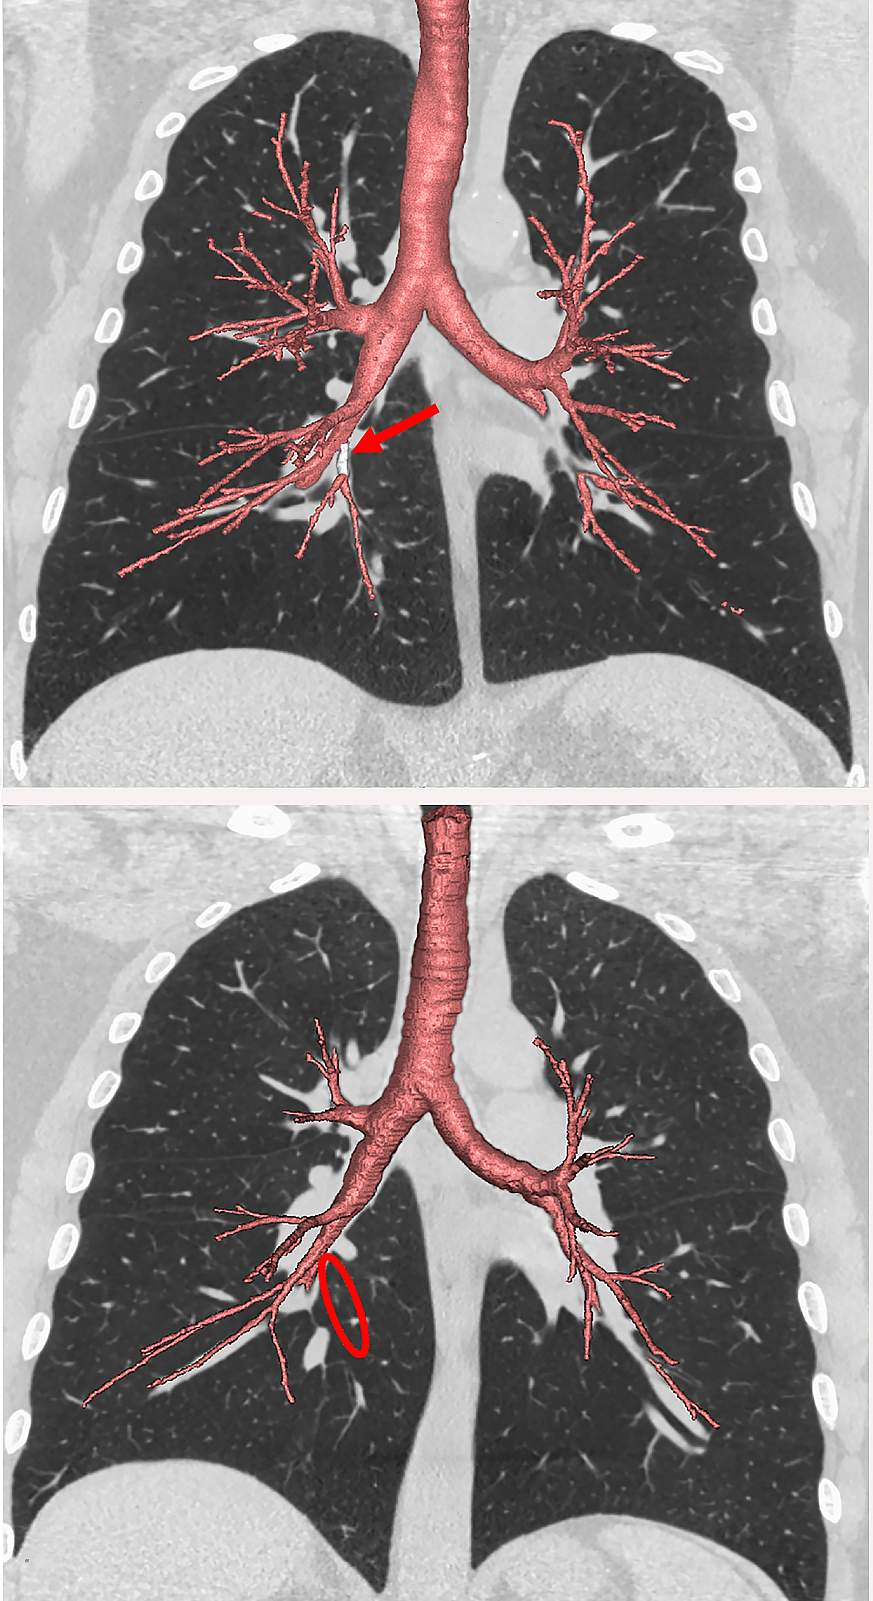 Images of the lungs highlighting the airway branches